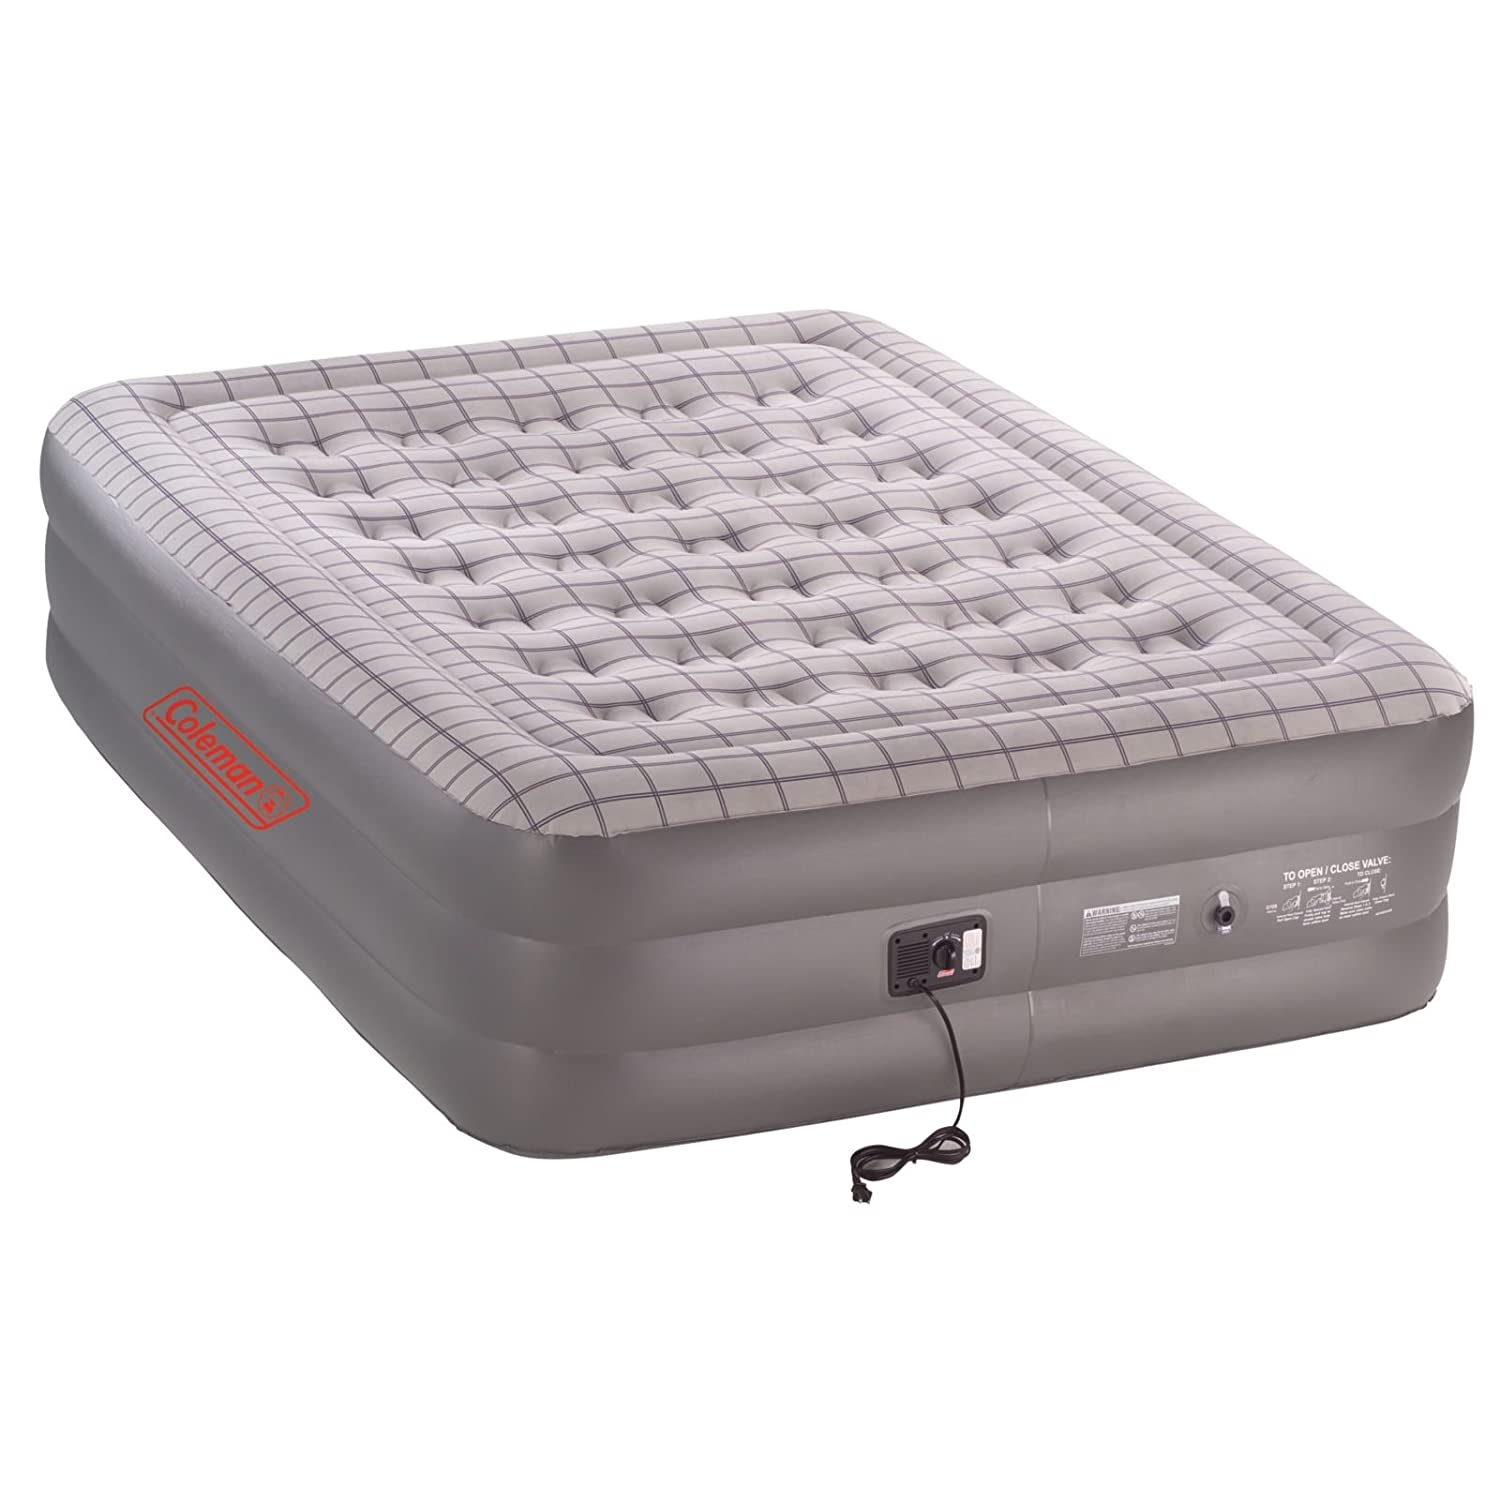 Heavy Duty Air Mattresses Over 300 Lbs For Heavy People